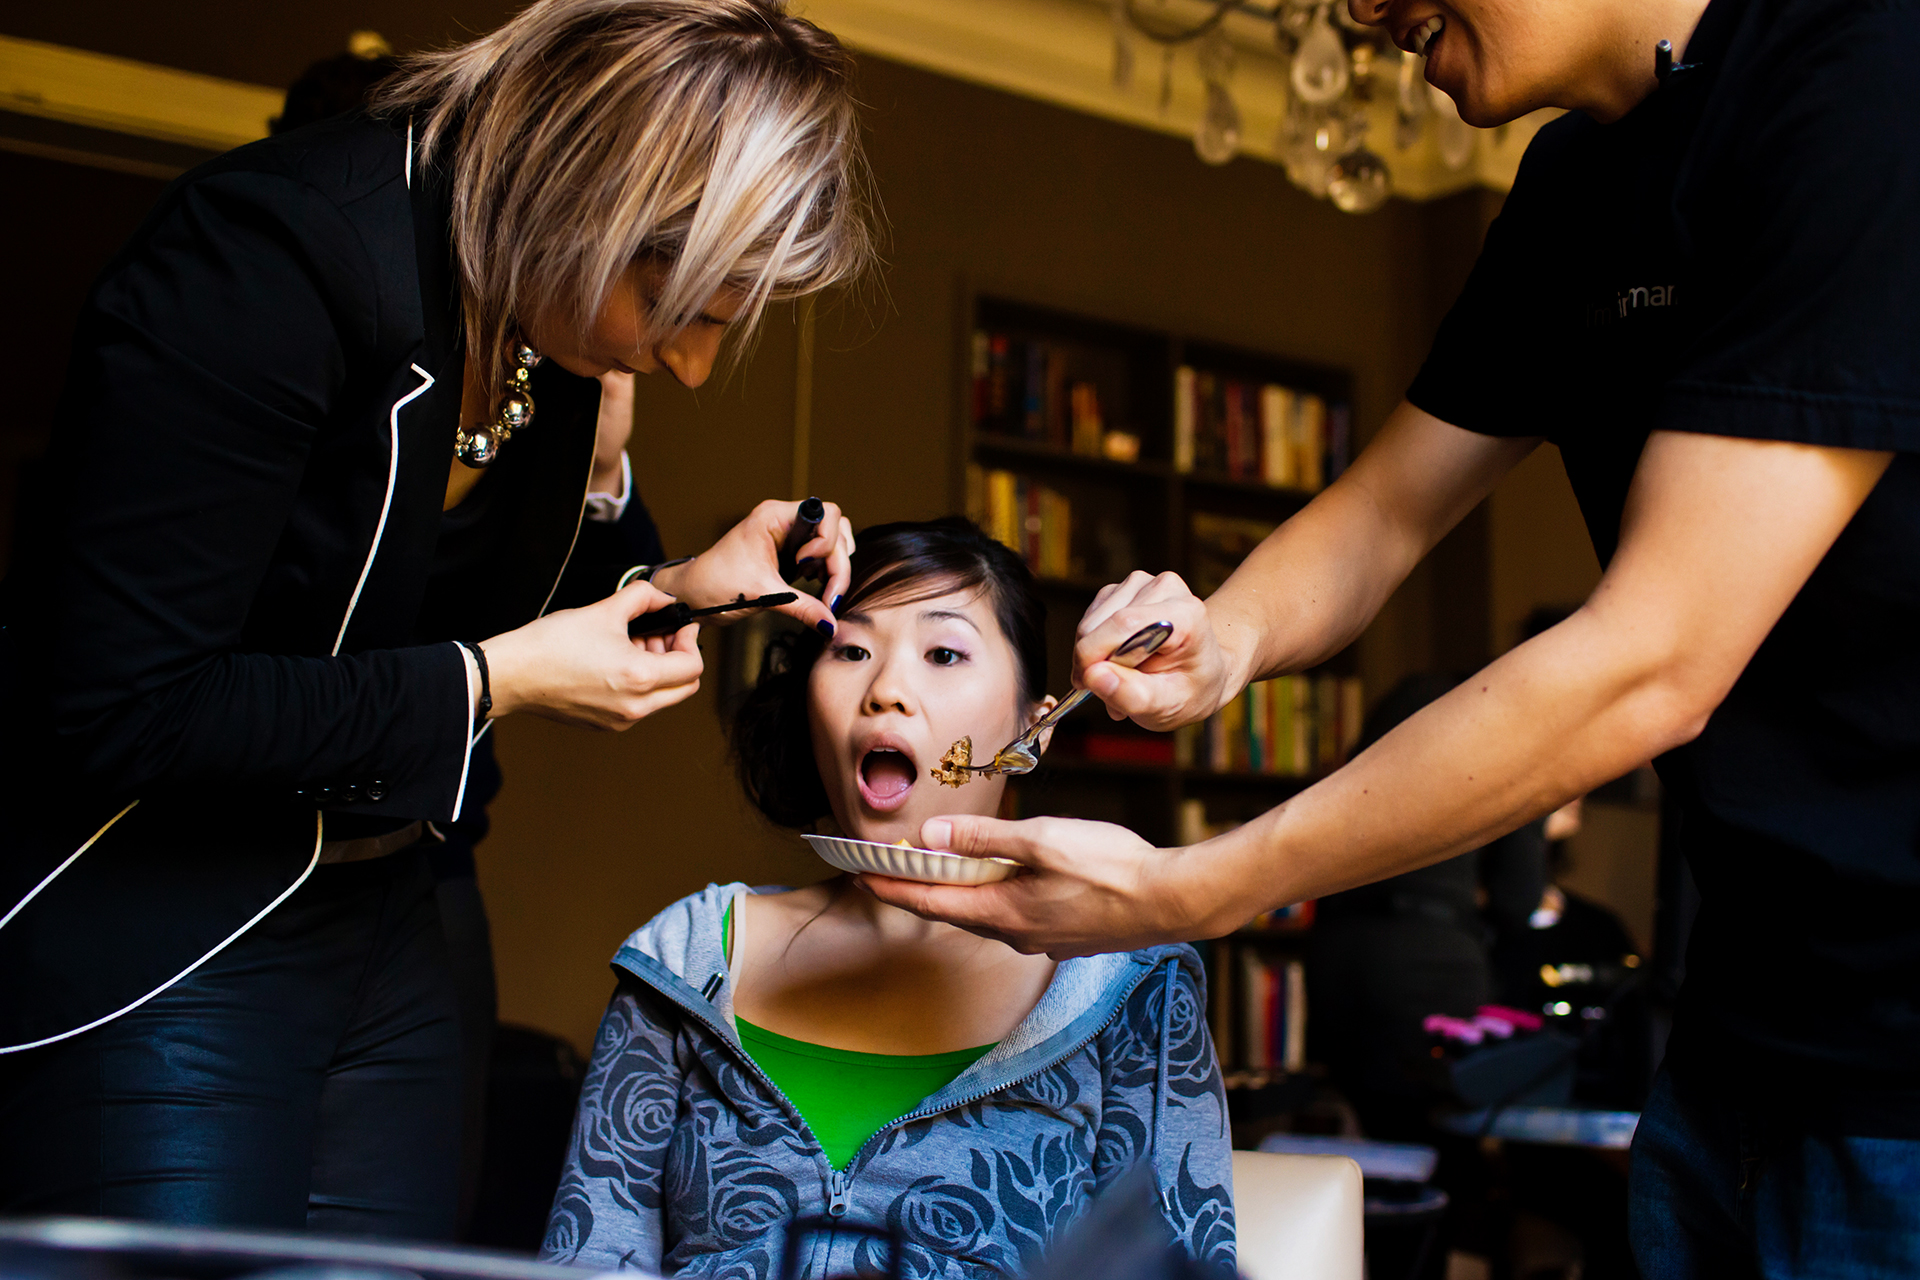 Paris Elopement Getting Ready Image | the bride has to sit still to have her mascara applied,